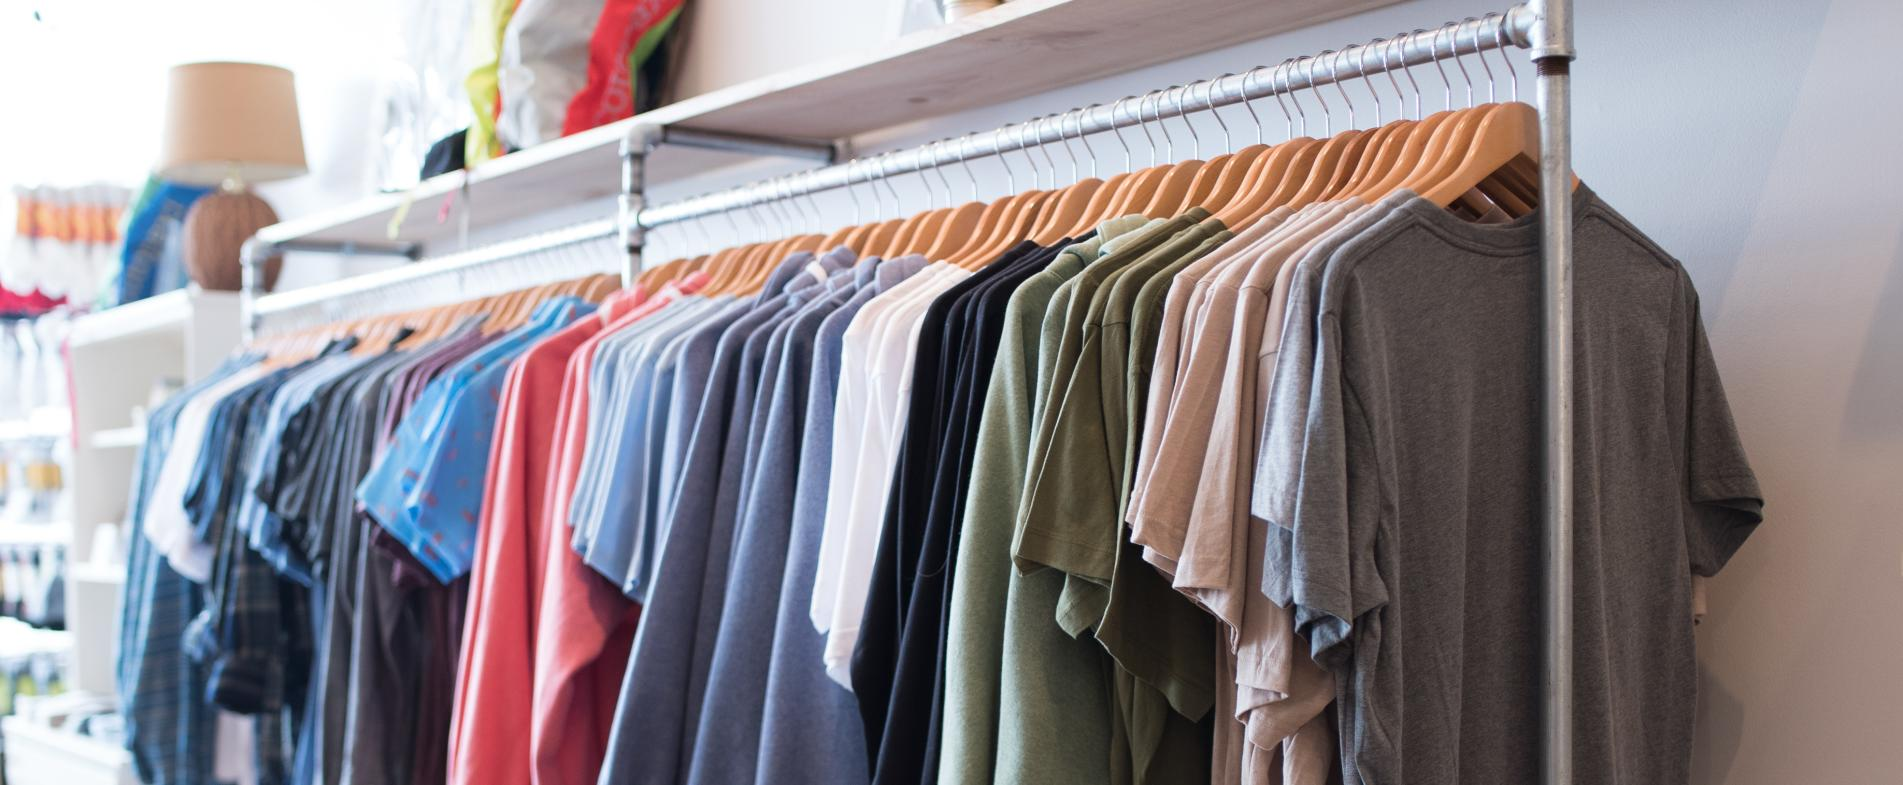 Reservoir, a New York-based boutique, carries clothing, footwear, and accessories for women, men, and children. The sustainable retail store also carries home products.